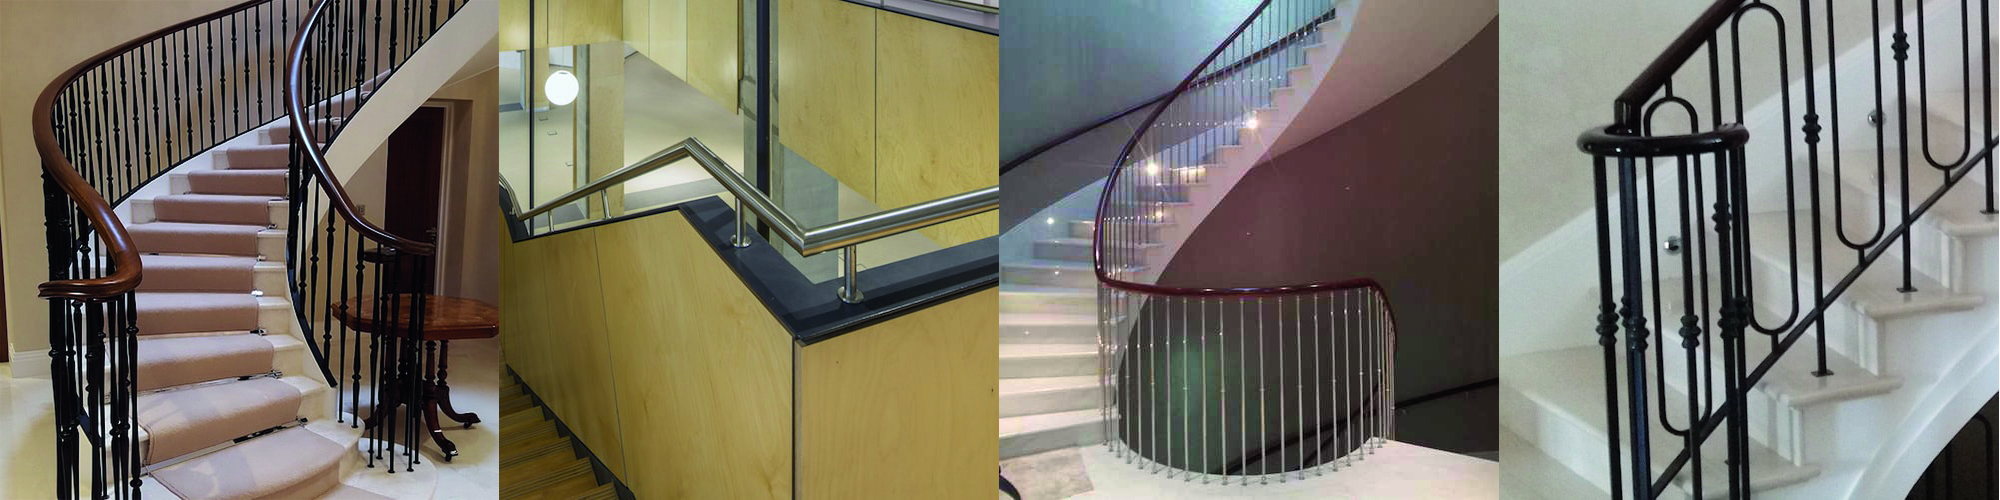 Images of metal Residential Handrails fitted in a variety of buildings